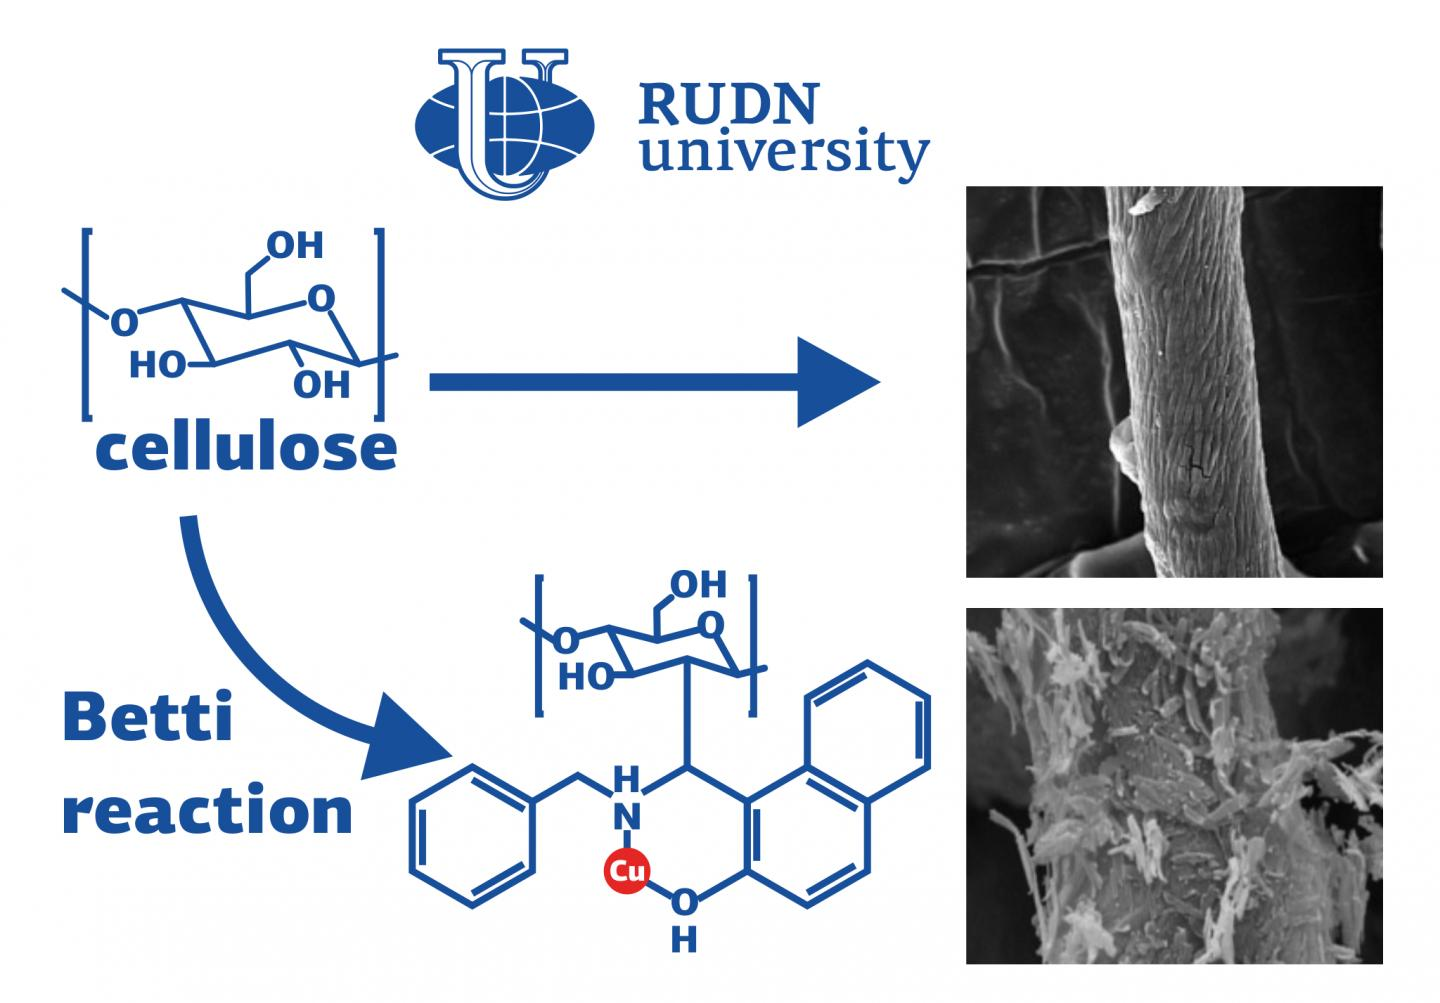 RUDN University chemist strengthens the catalyst for oxidiazoles synthesis by 3 times